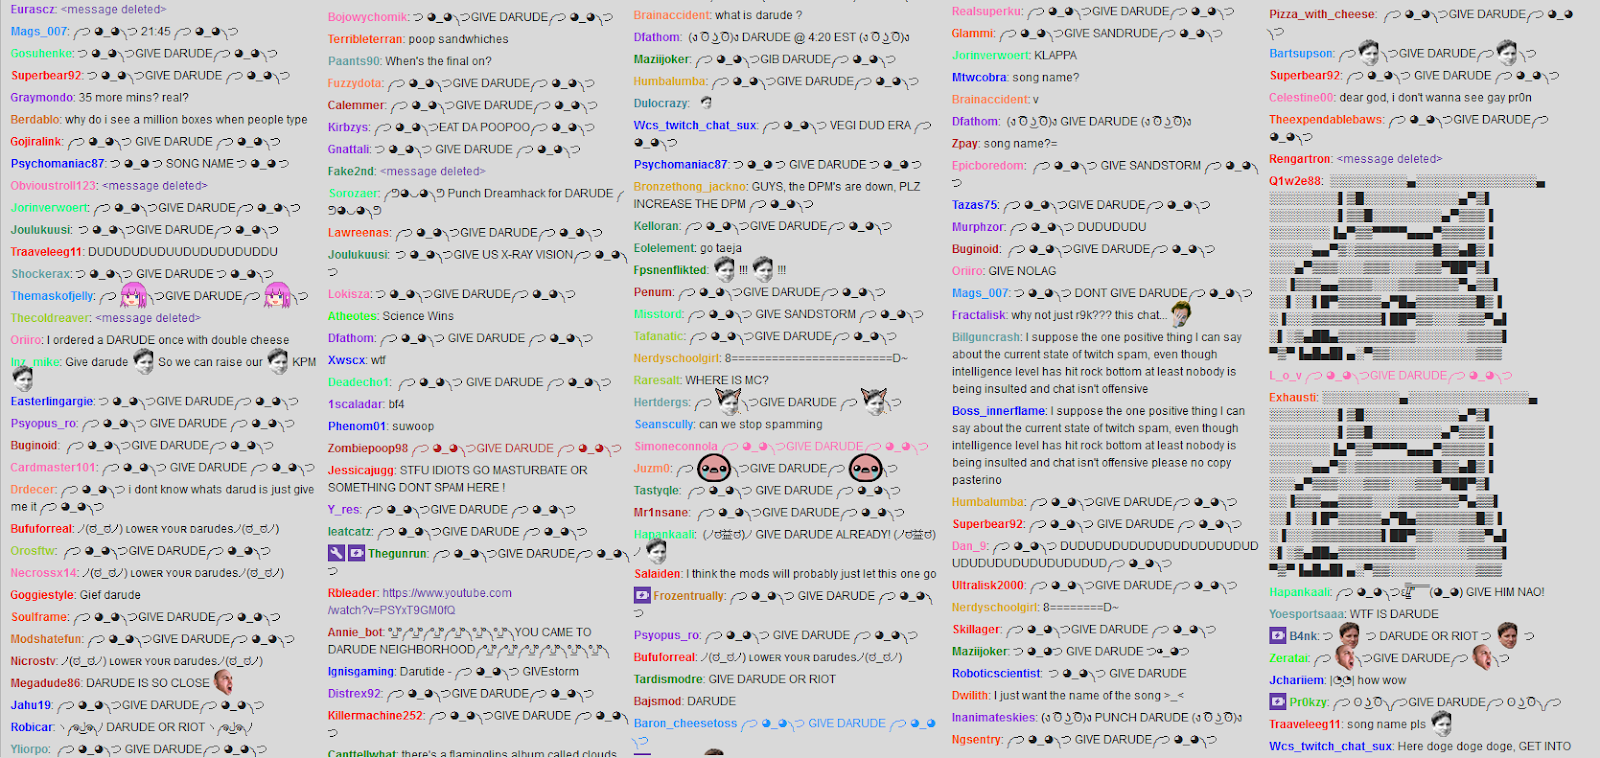 Twitch Chat Mess